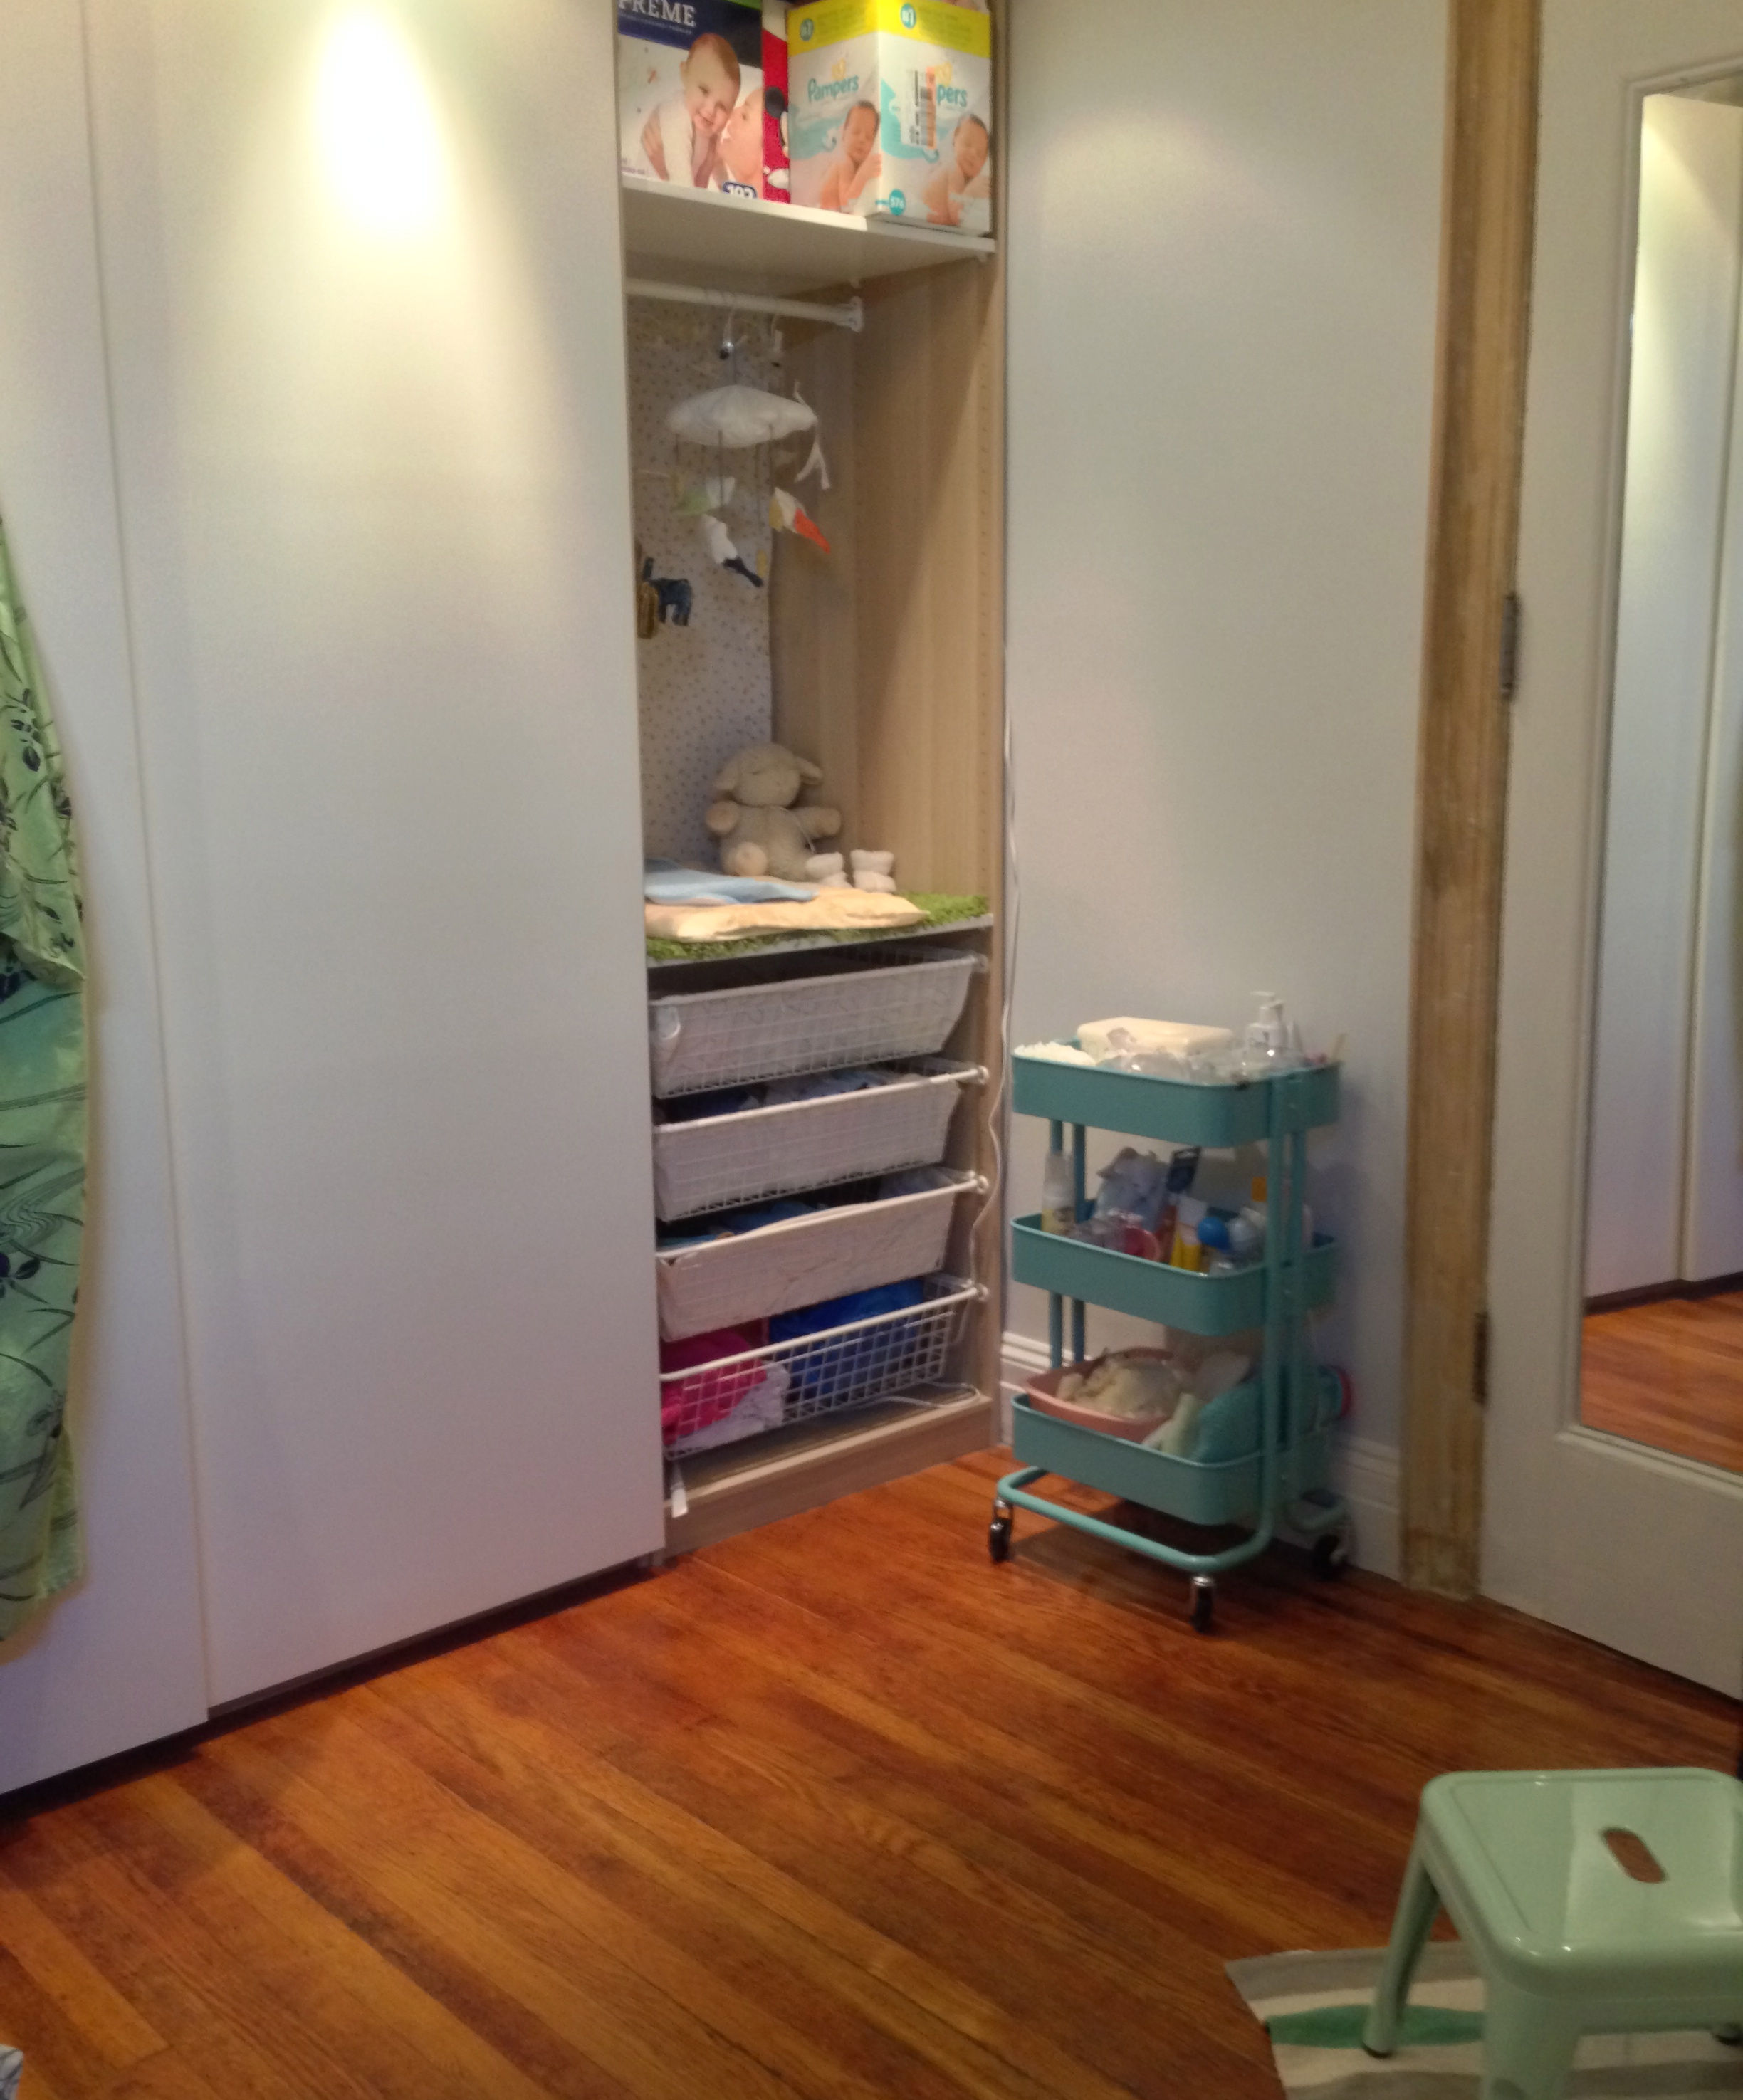 During The First Few Months Our Daughter Slept In Her Baby Box Right By Bed Way Is Something I Stumbled Across On Internet